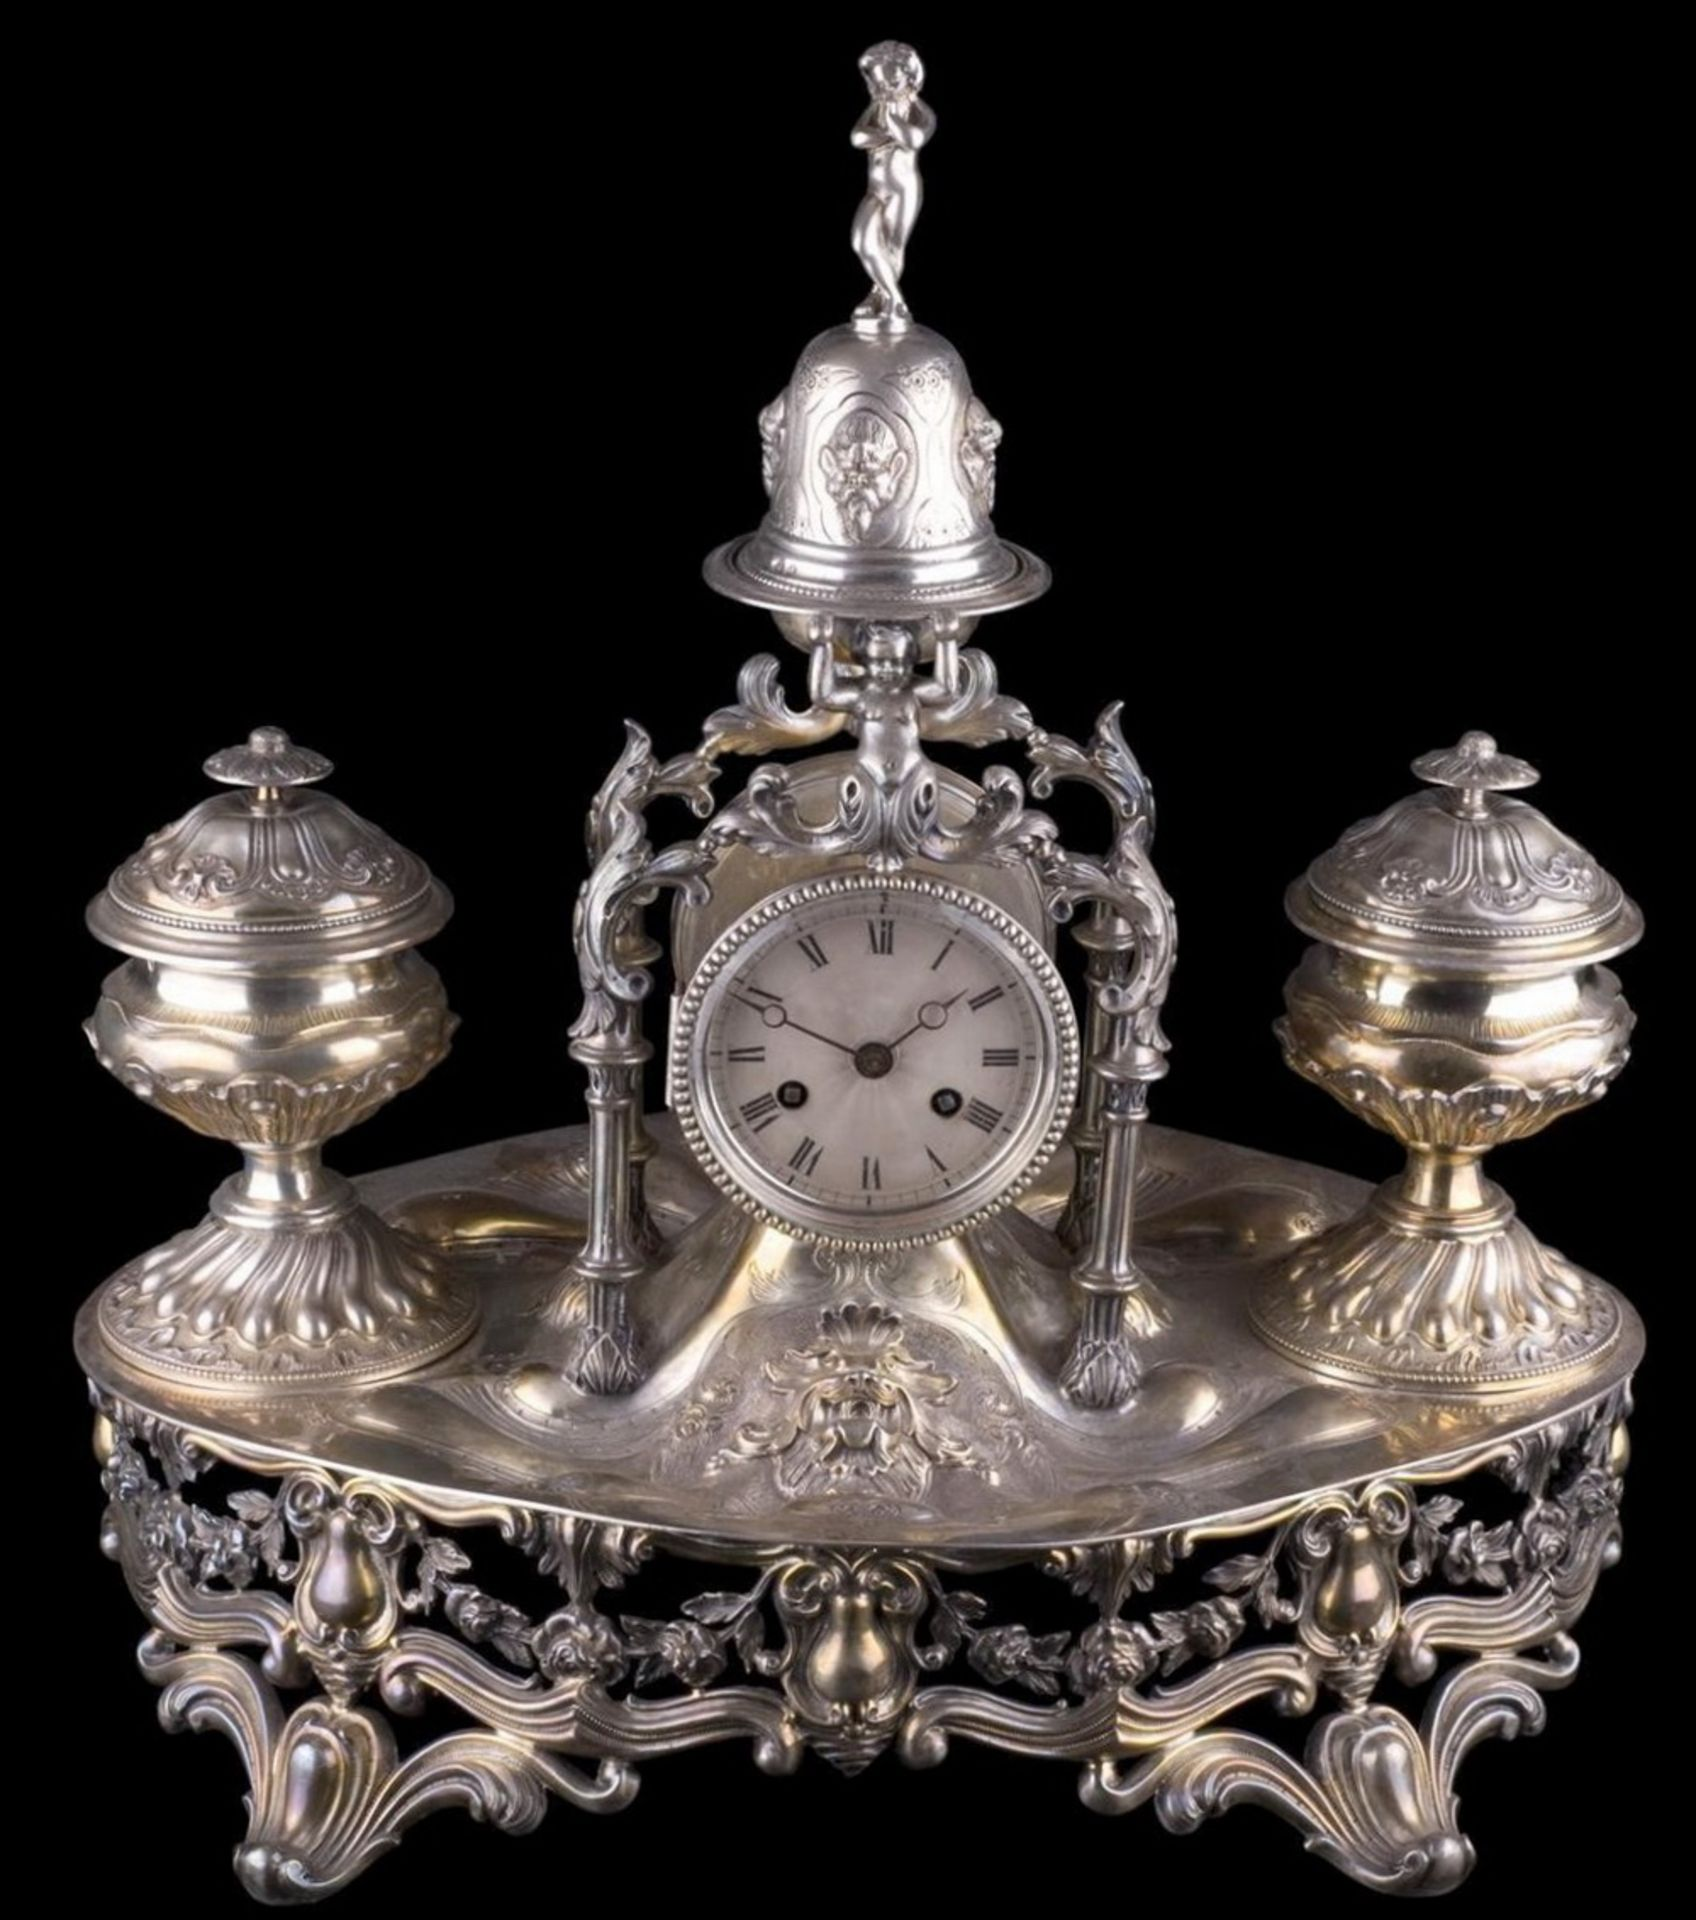 Fine quality silver inkstand with the table clock and the bell. Emile Hugo workshop. France, Paris.